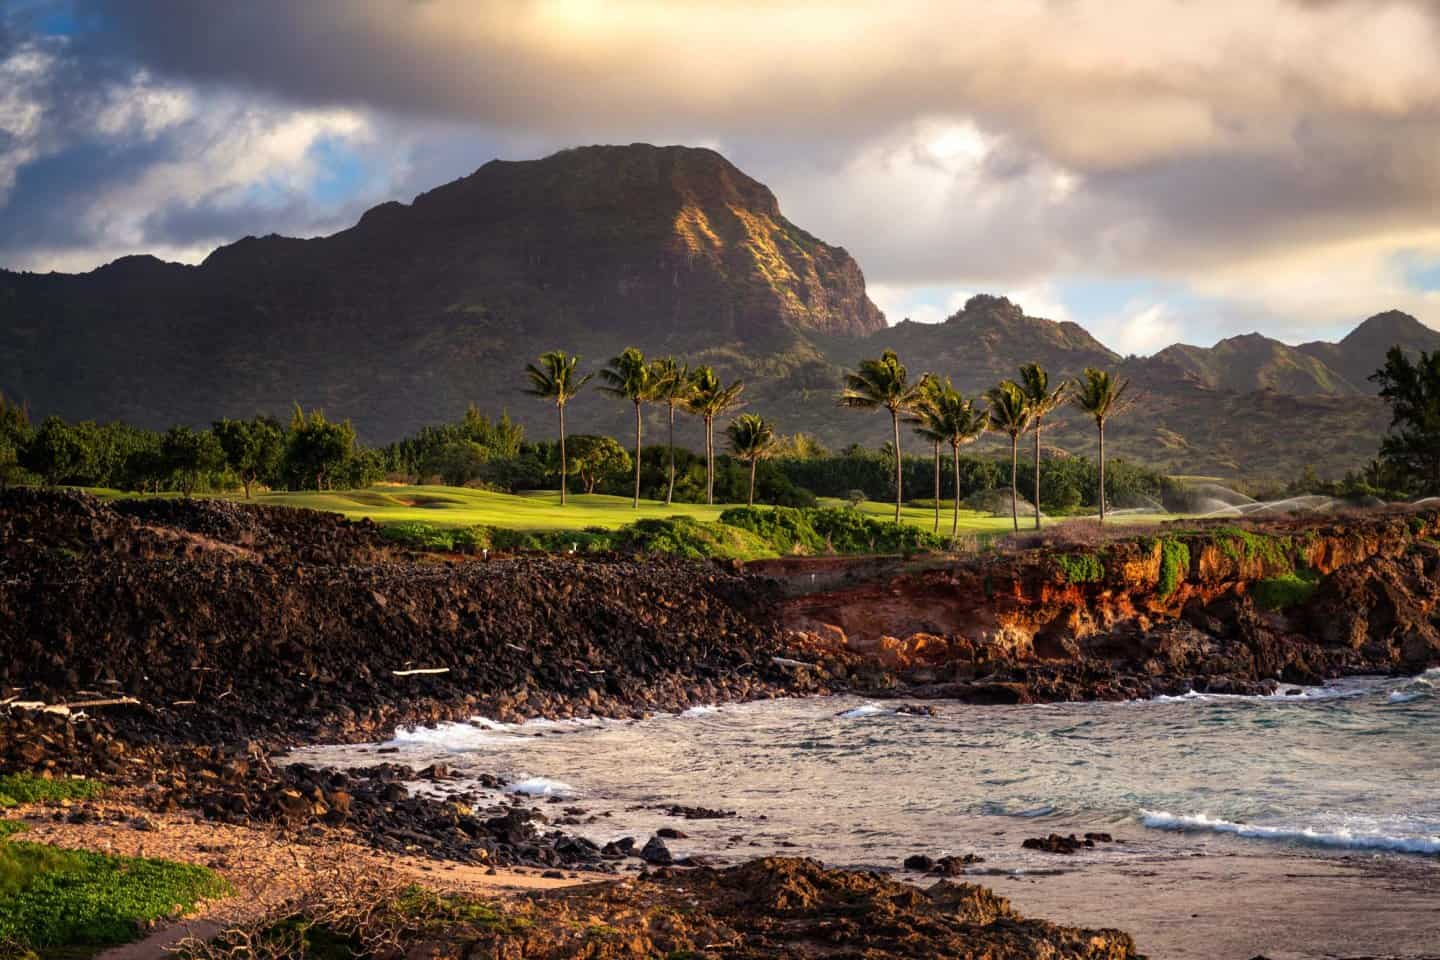 Sunrise photo at one of the best Kauai photography locations near Poipu